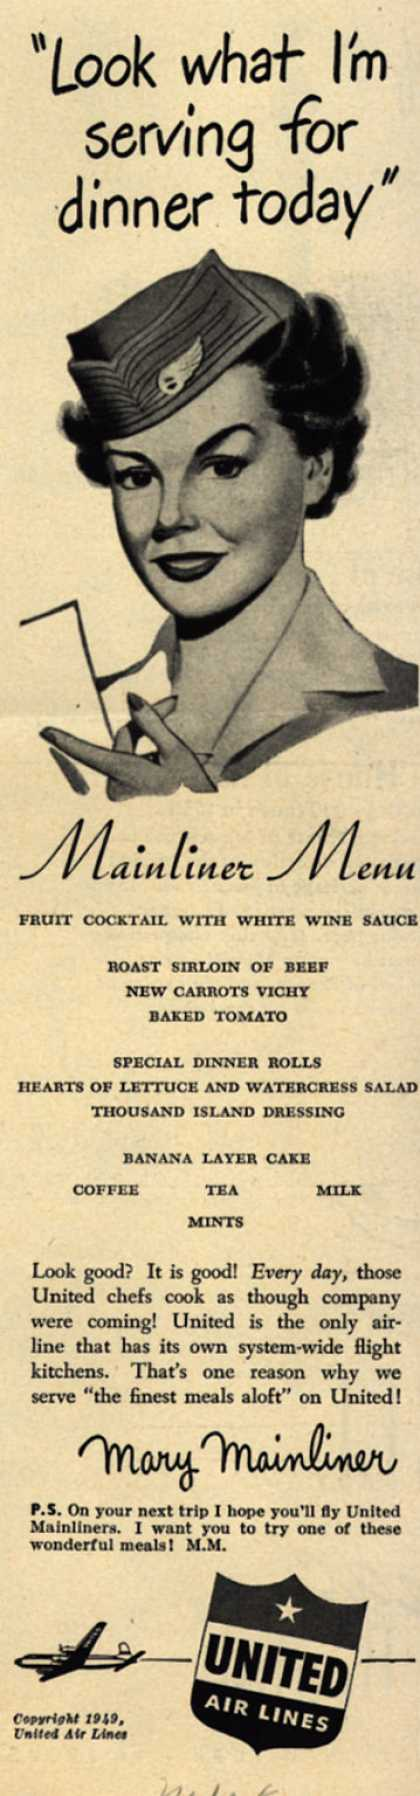 "United Air Line's Meals – ""Look what I'm serving for dinner today"" (1949)"